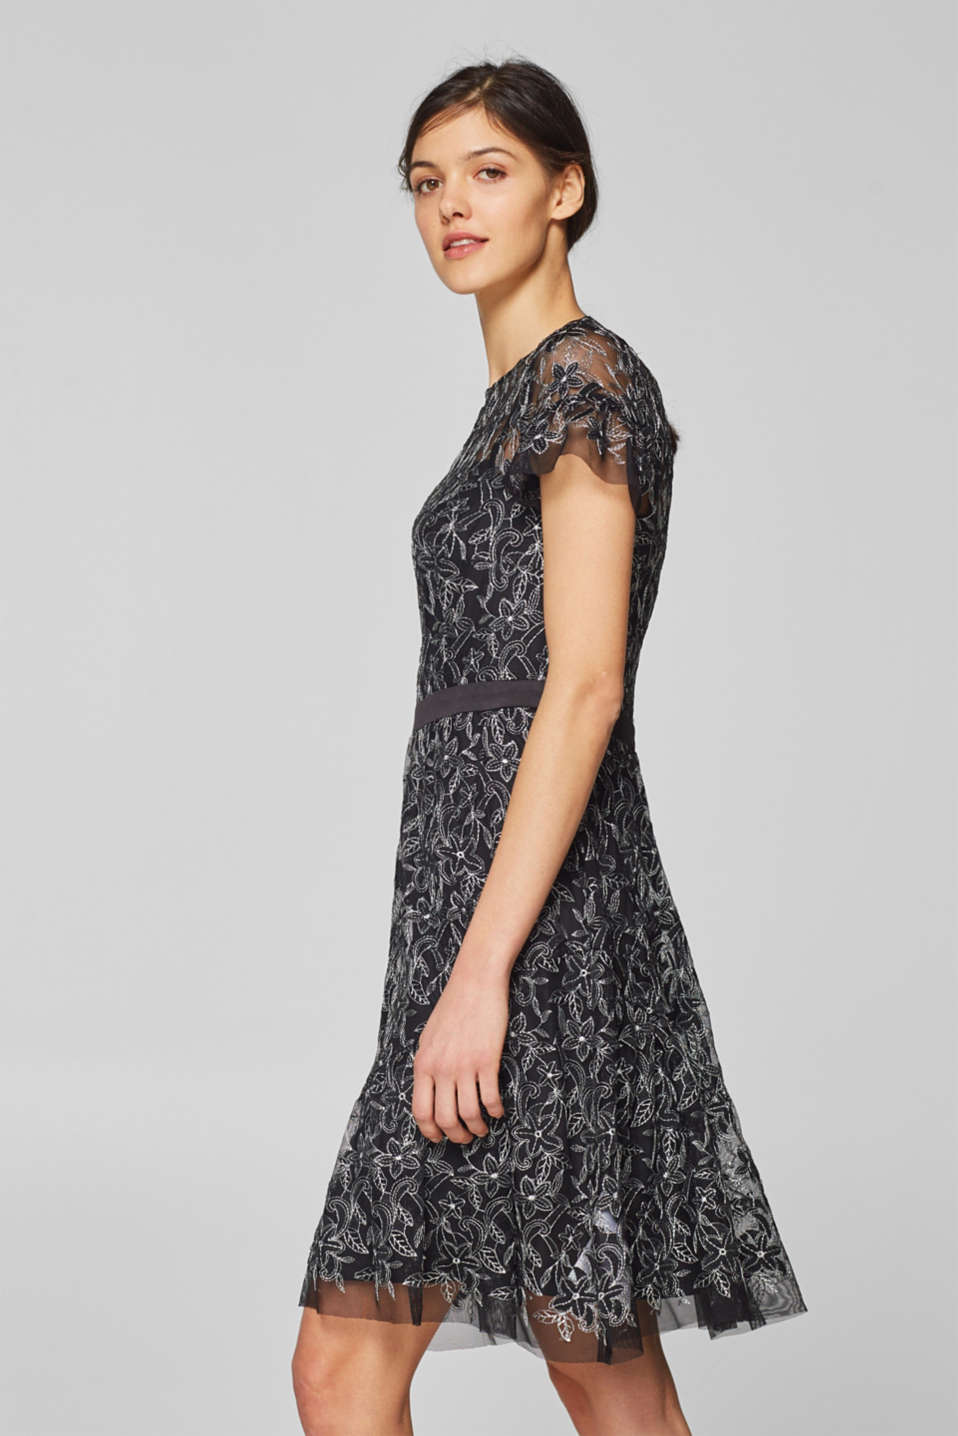 Esprit - Embroidered mesh dress plus slip